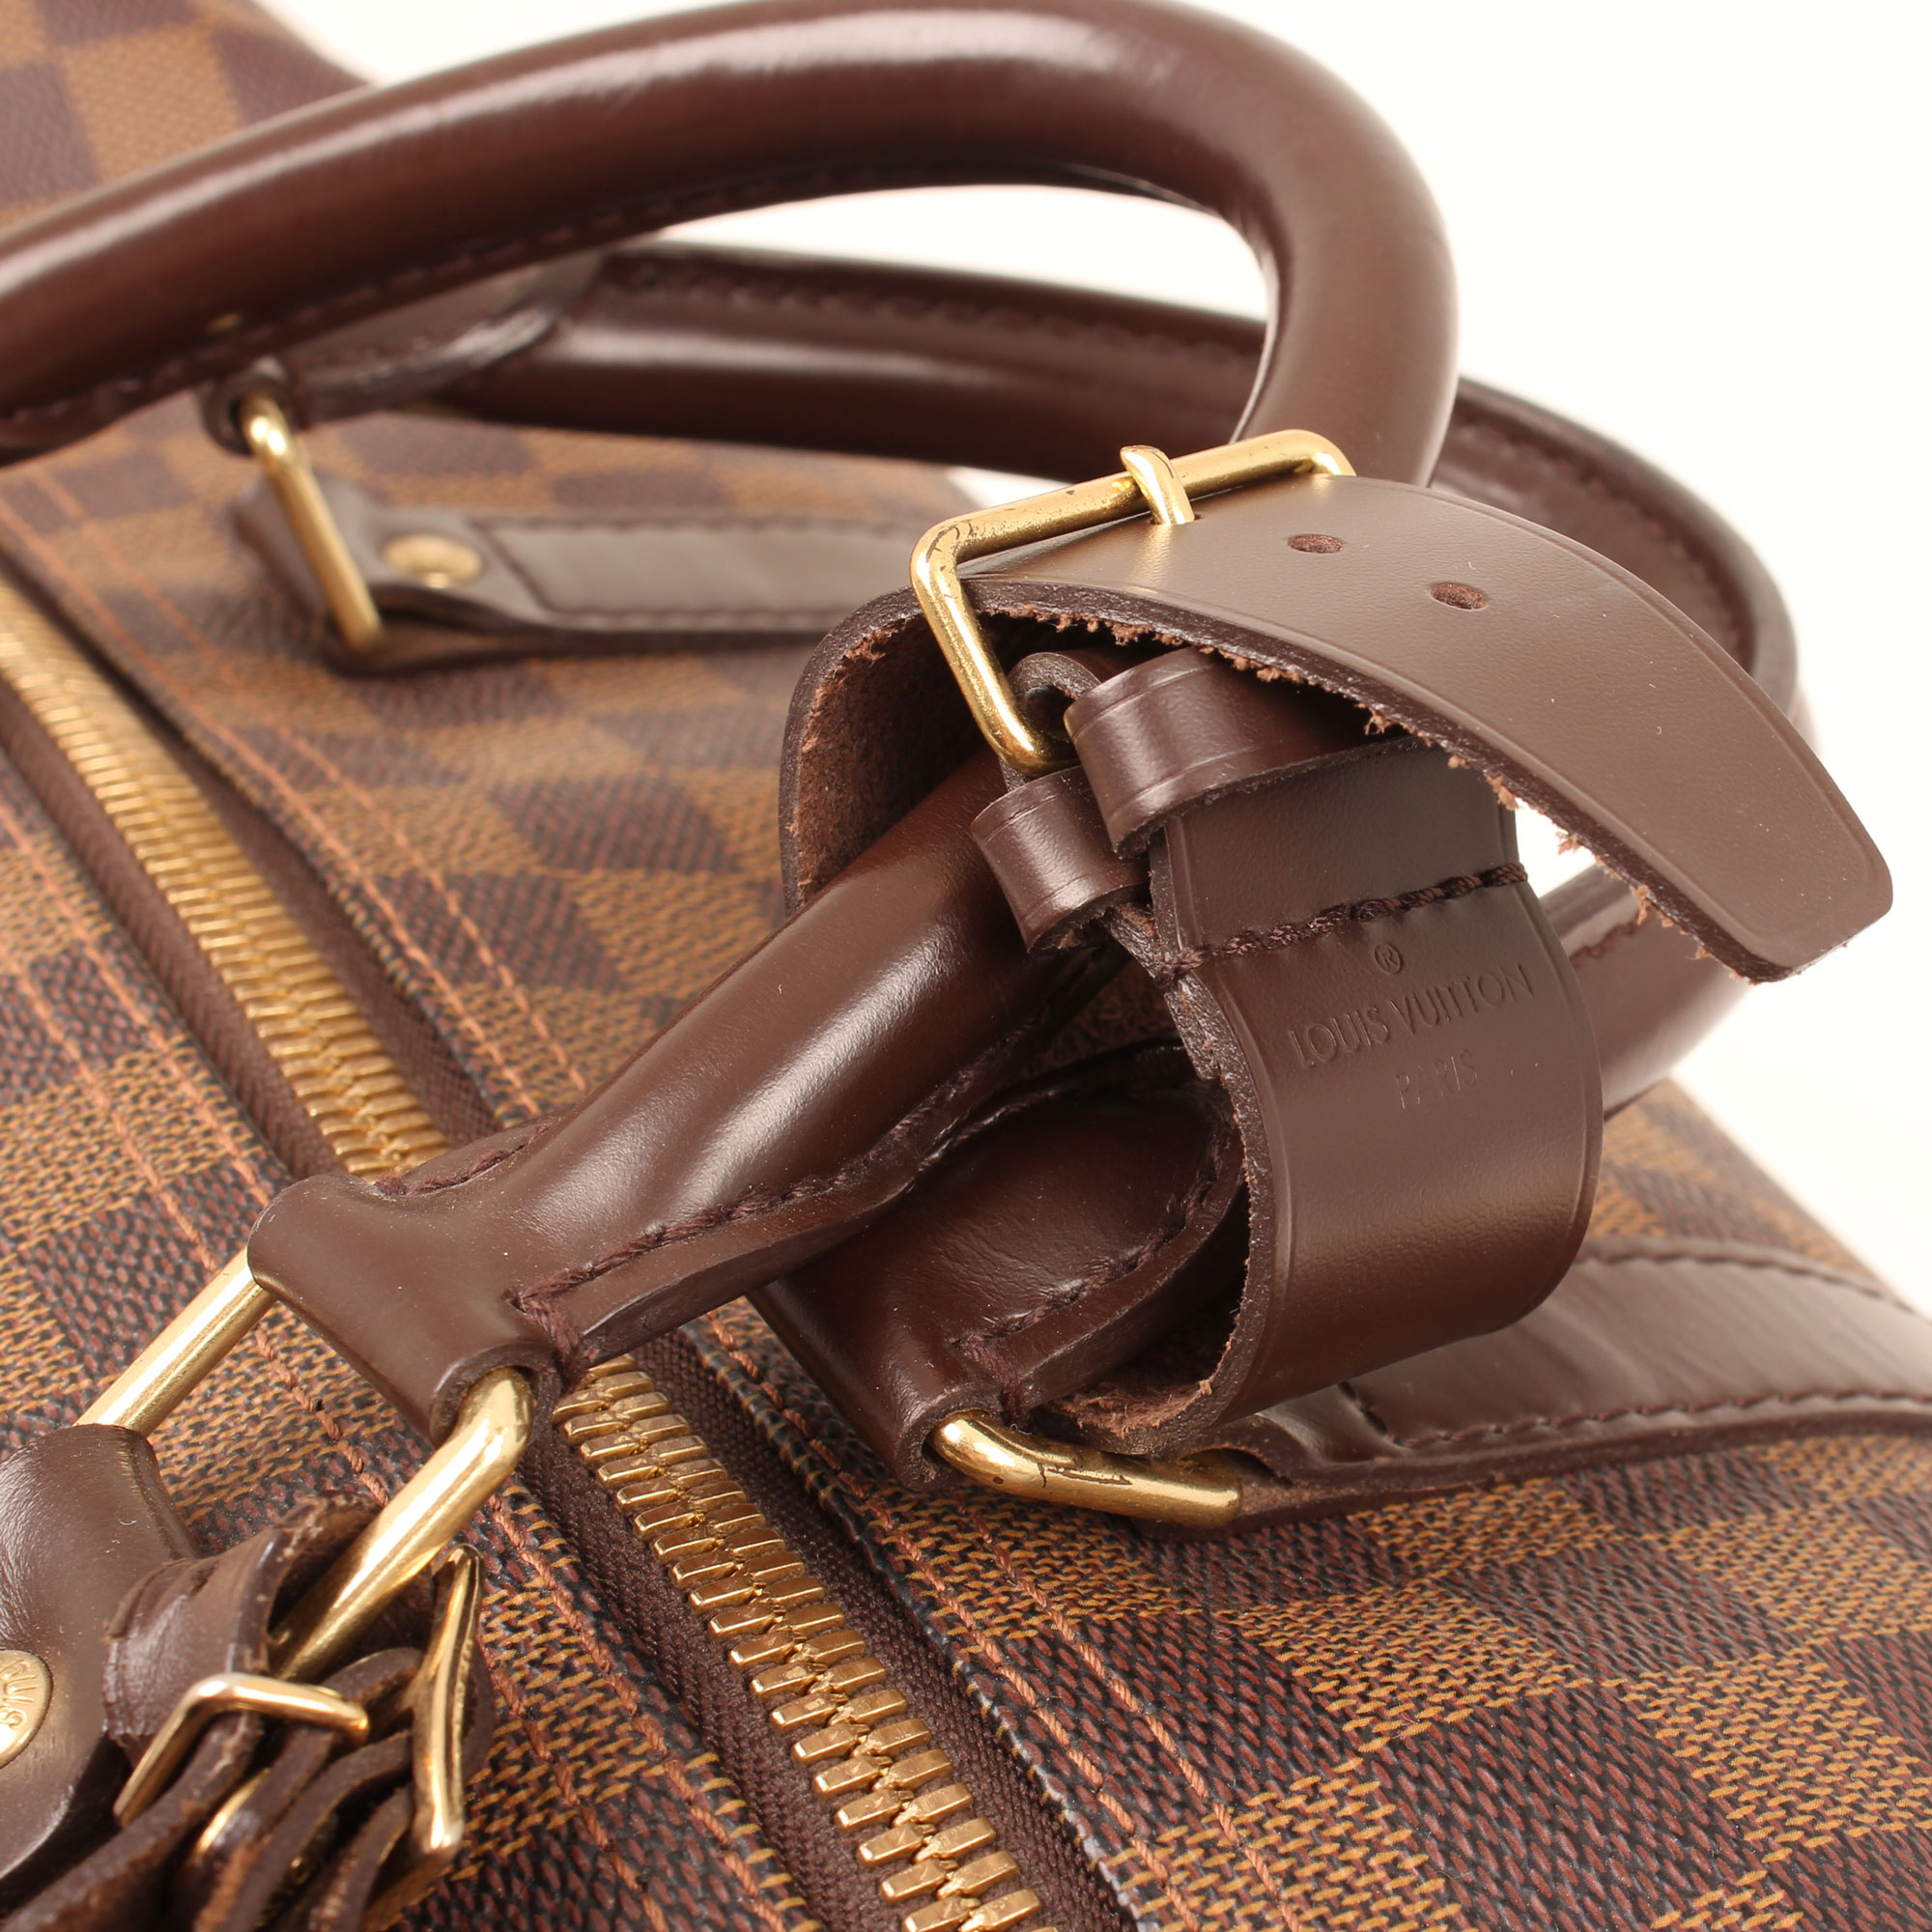 travel-bag-louis-vuitton-keepall-50-damier-ebene-handles